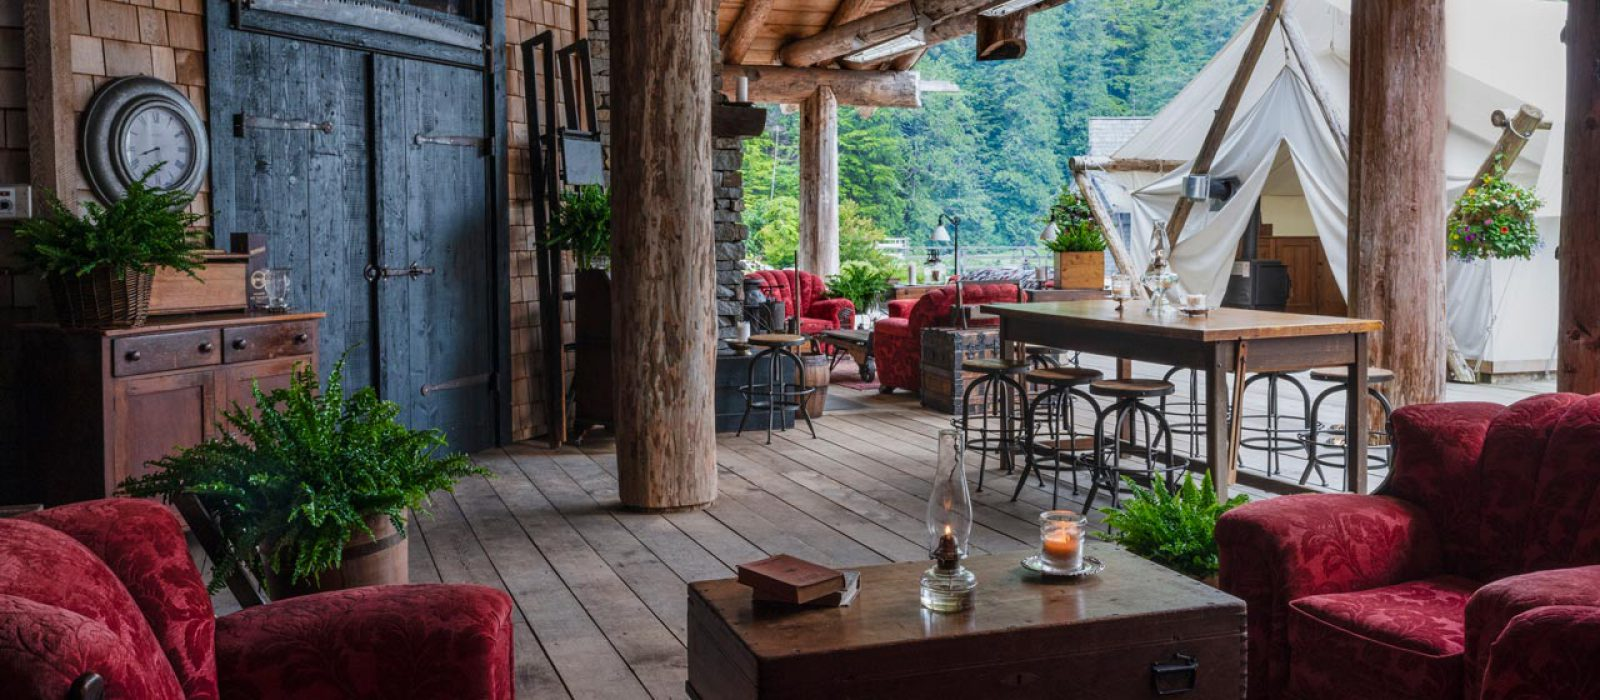 Outdoor lounge with red couches and cookhouse at the Clayoquot Wilderness Resort